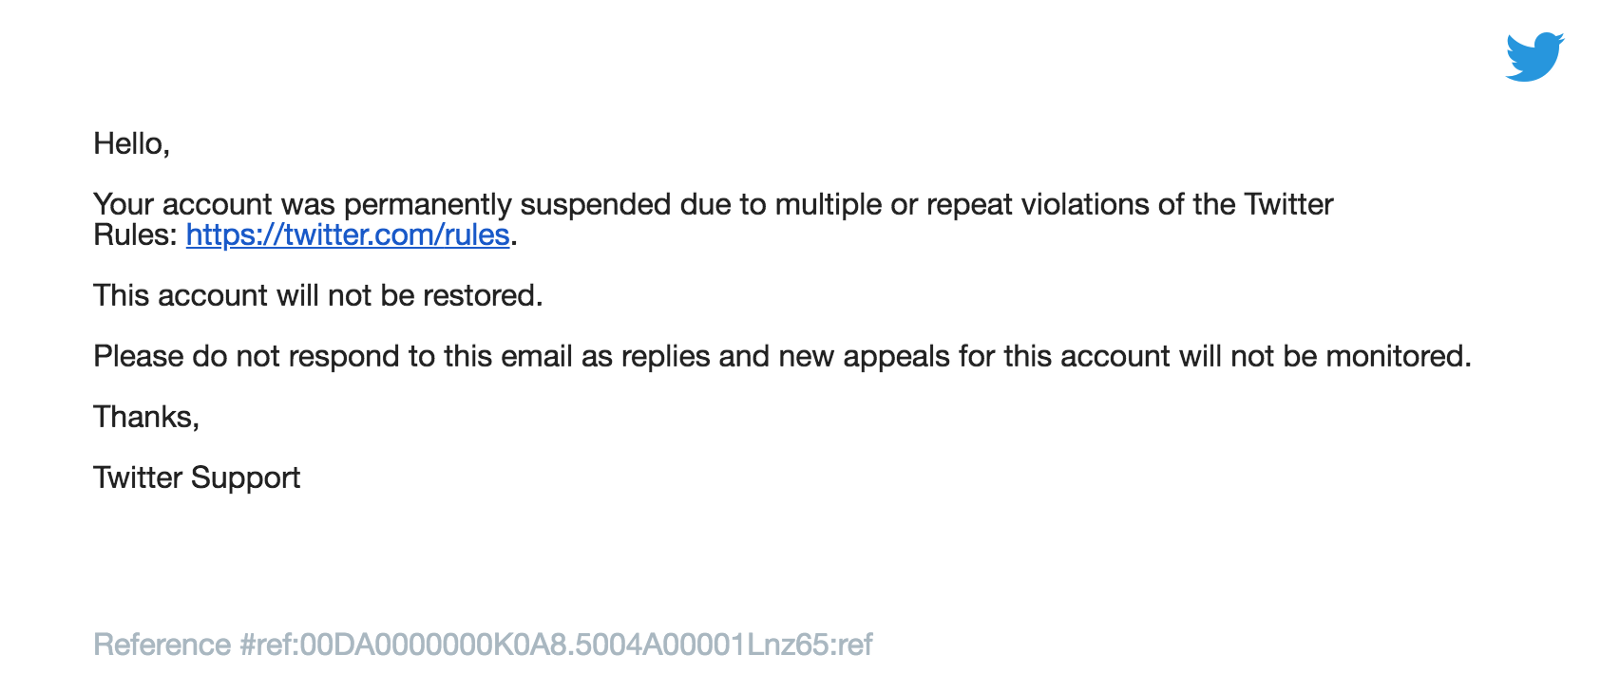 Users can have their accounts permanently suspended for these violation